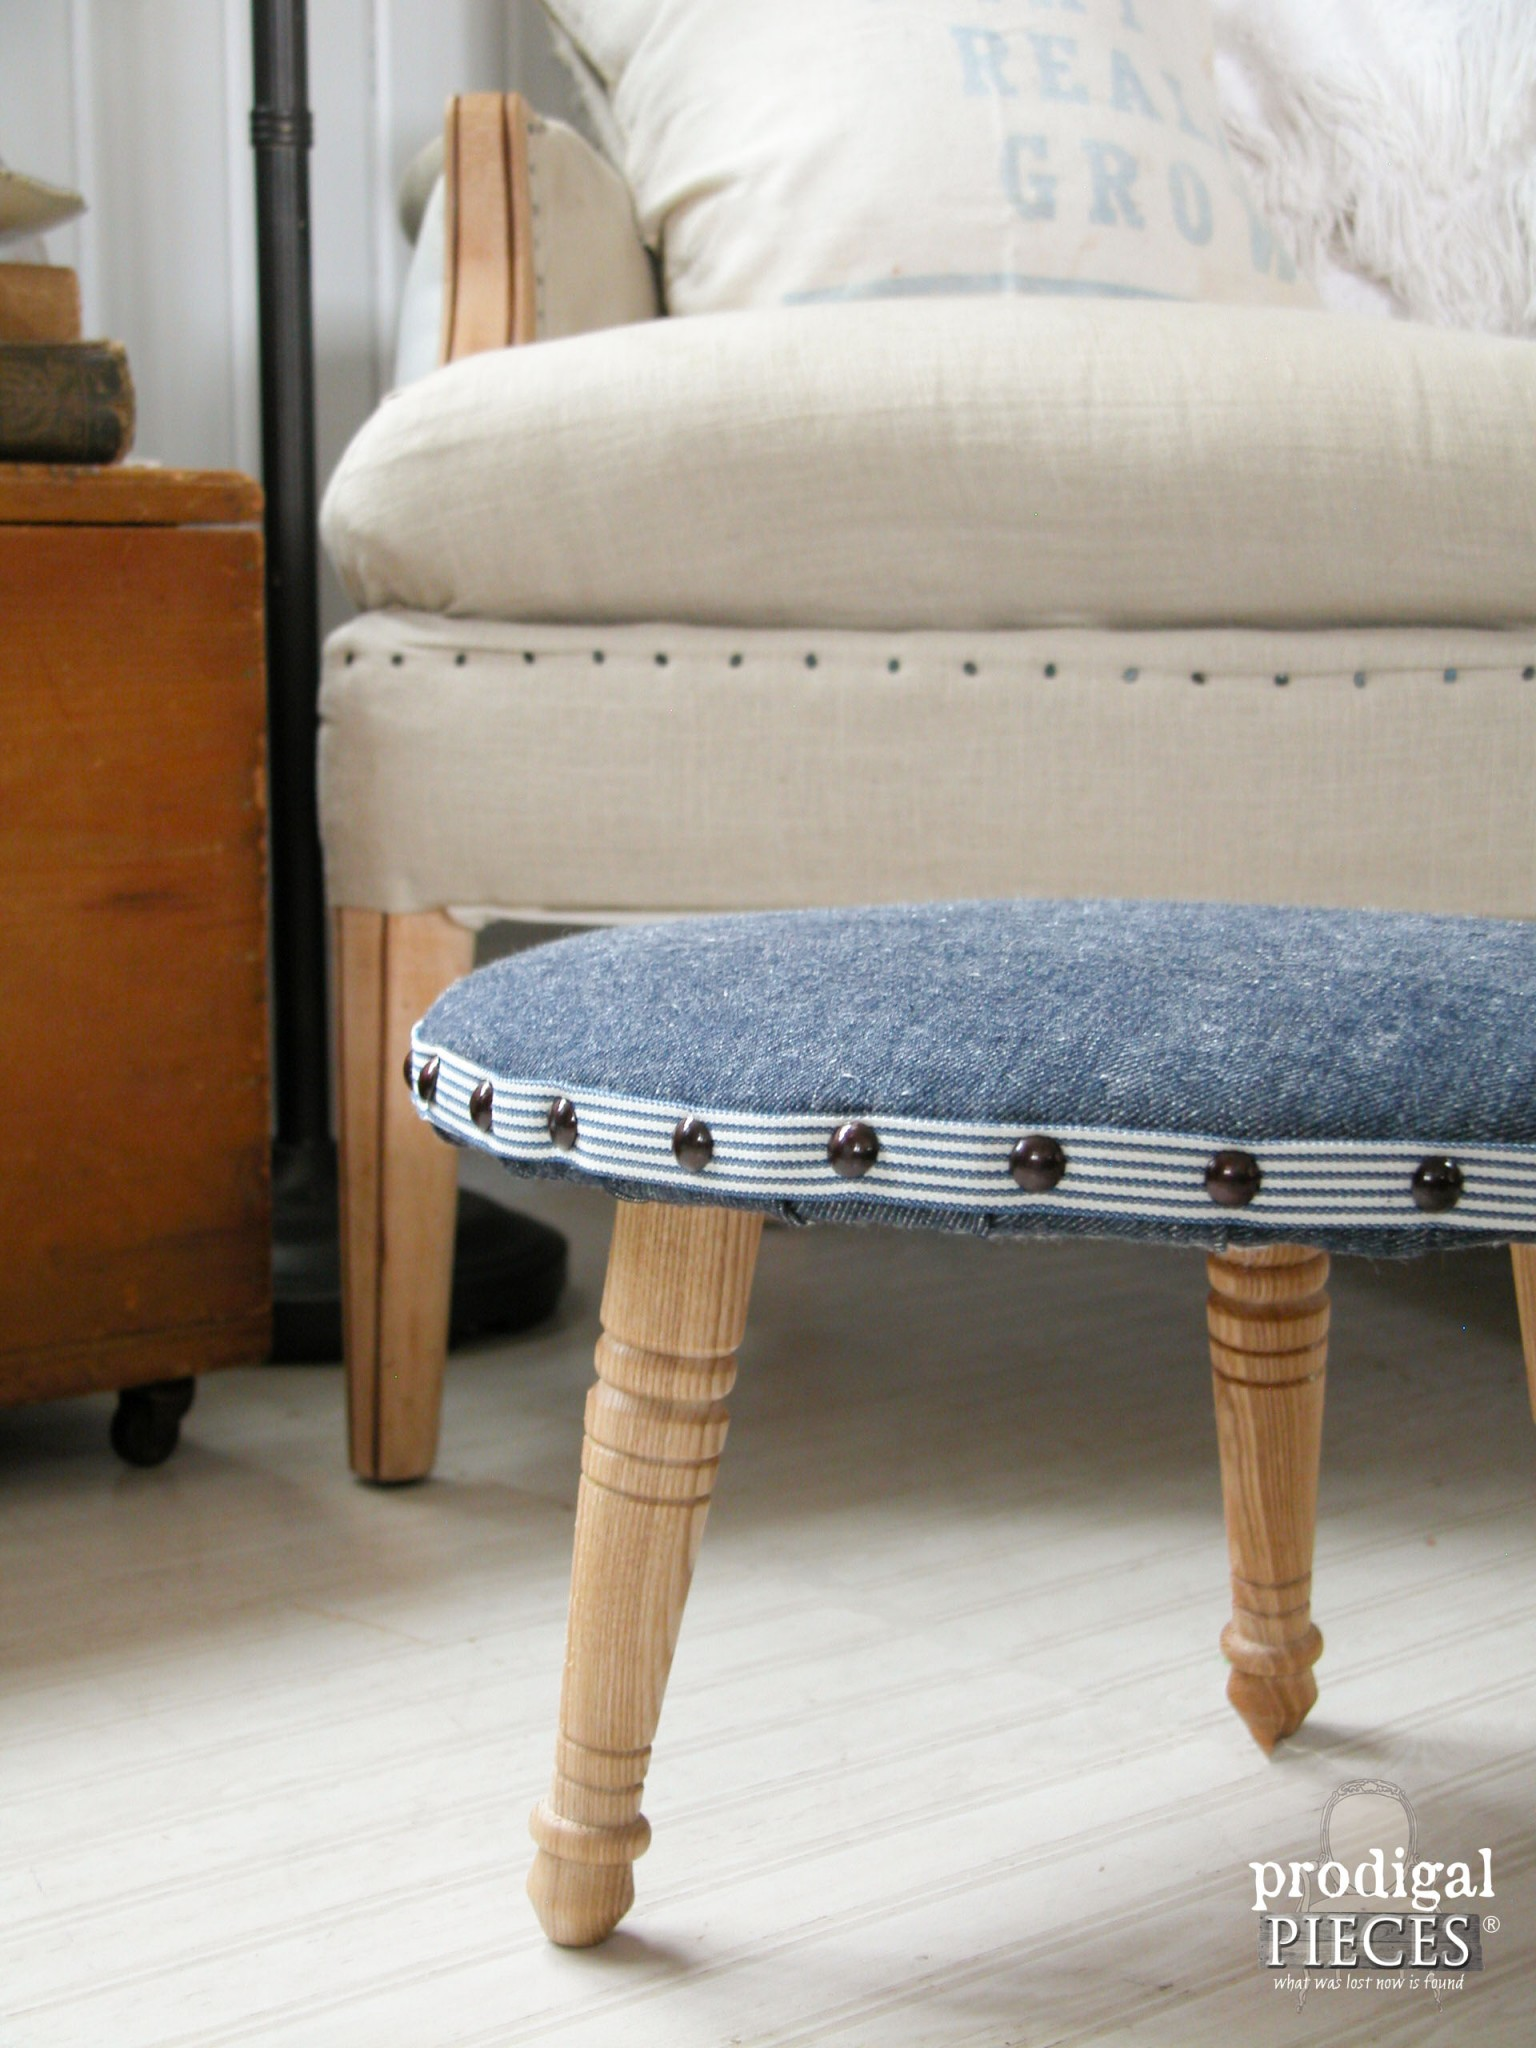 Denim Upholstered Footstool by Prodigal Pieces | prodigalpieces.com